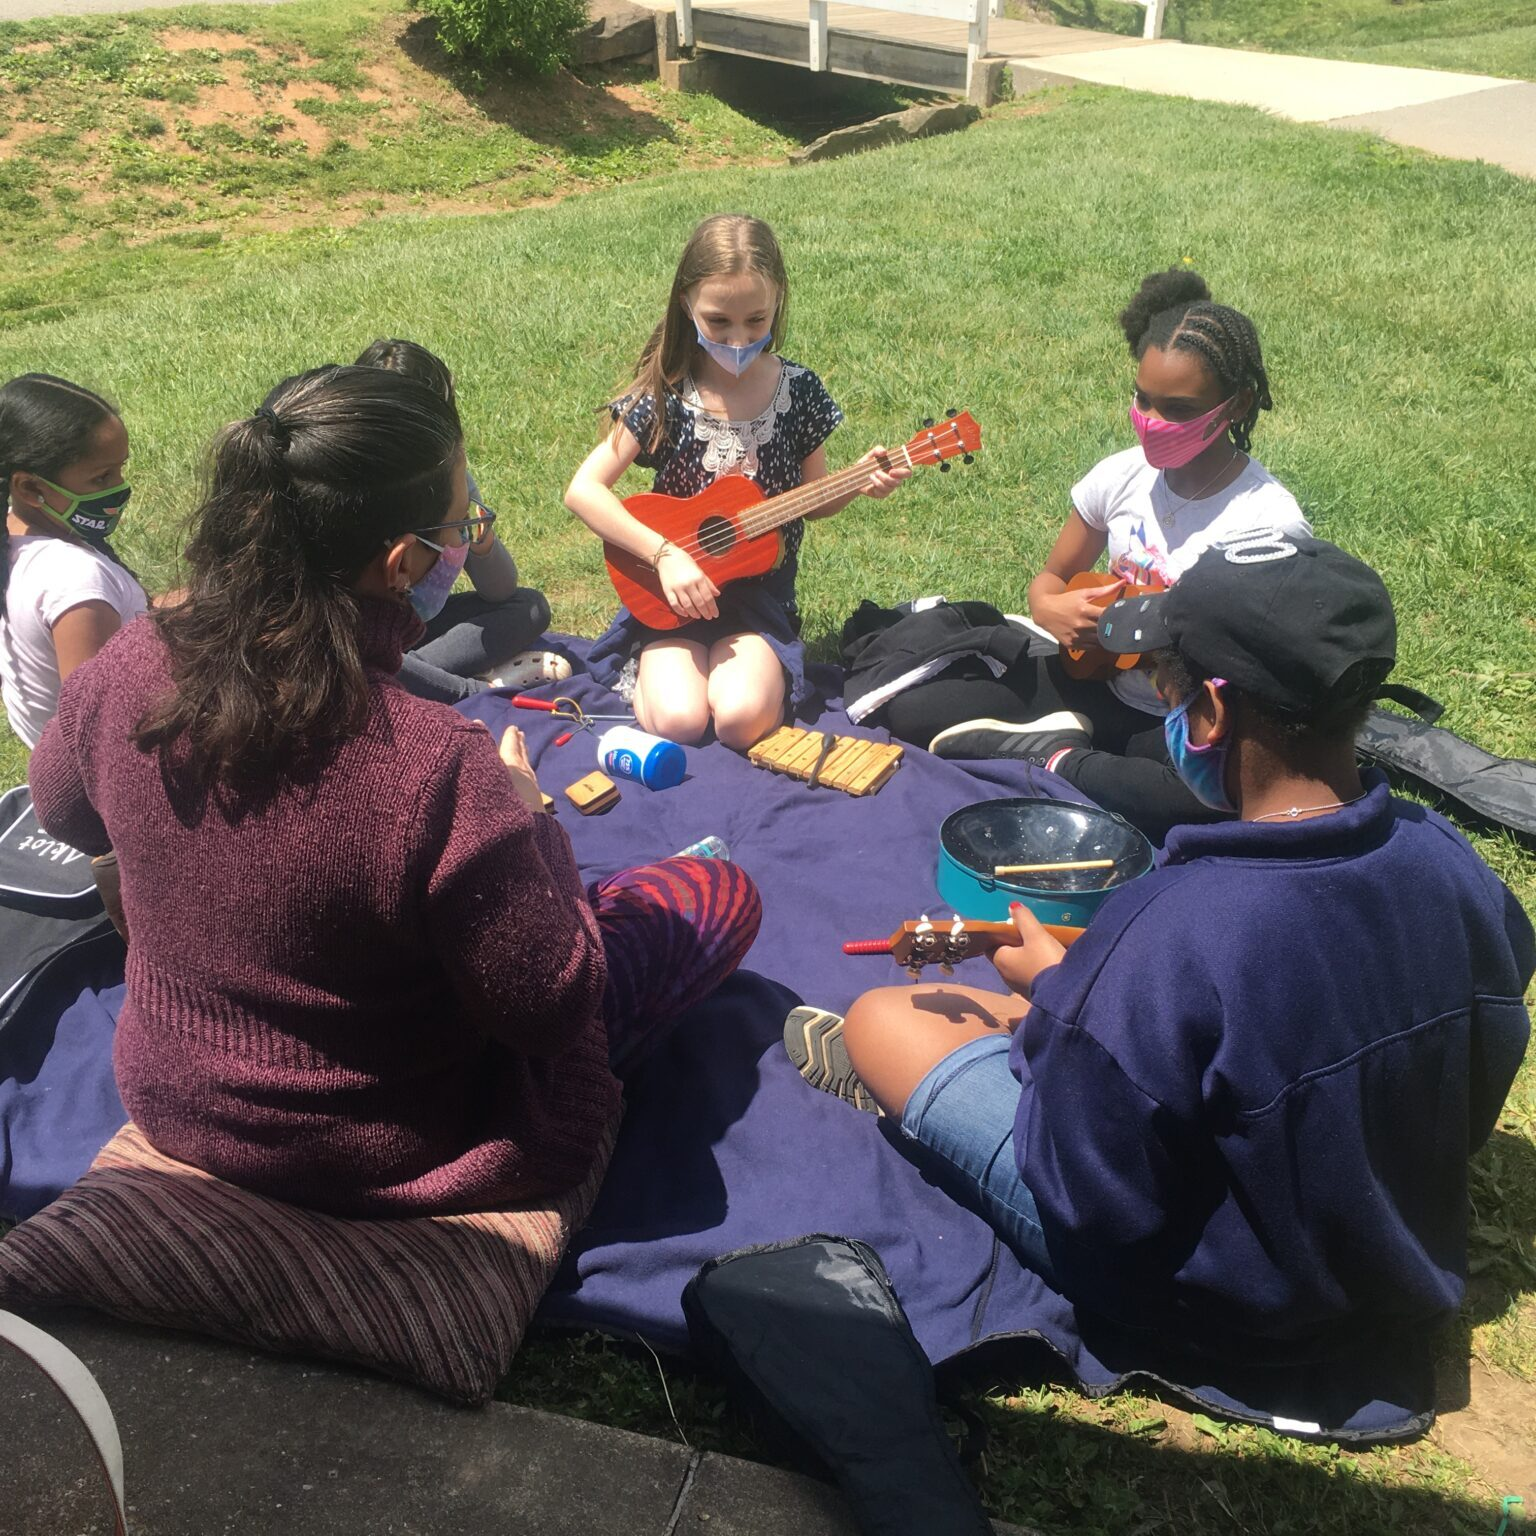 Kids outside for music class playing instruments in a circle